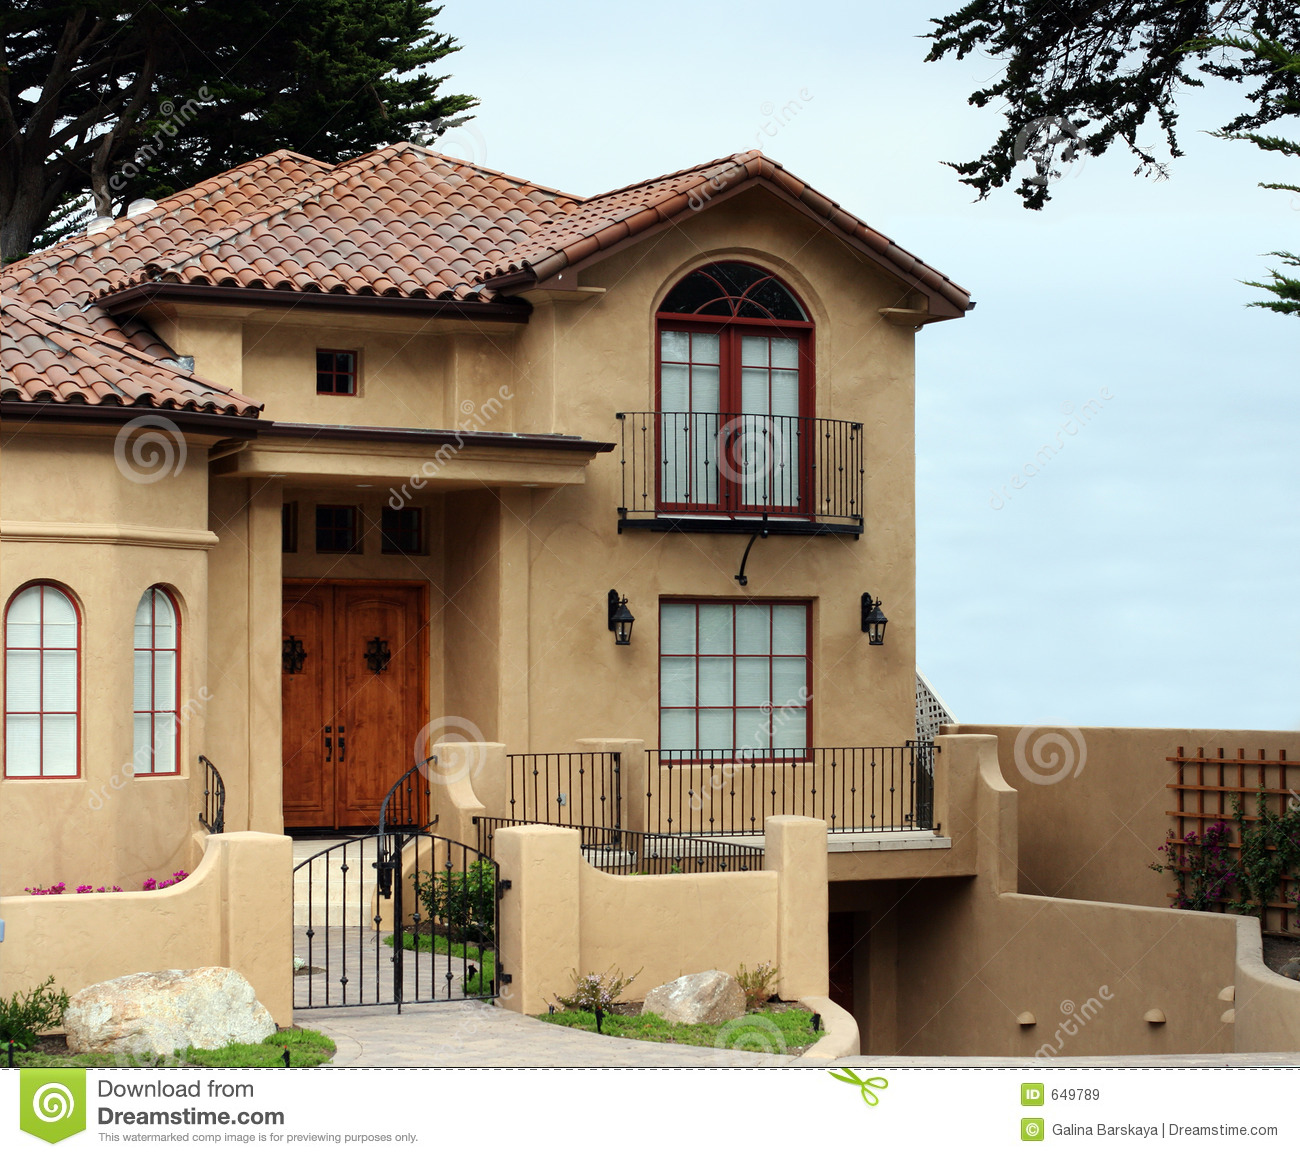 Beautiful california house royalty free stock images for Pretty modern houses